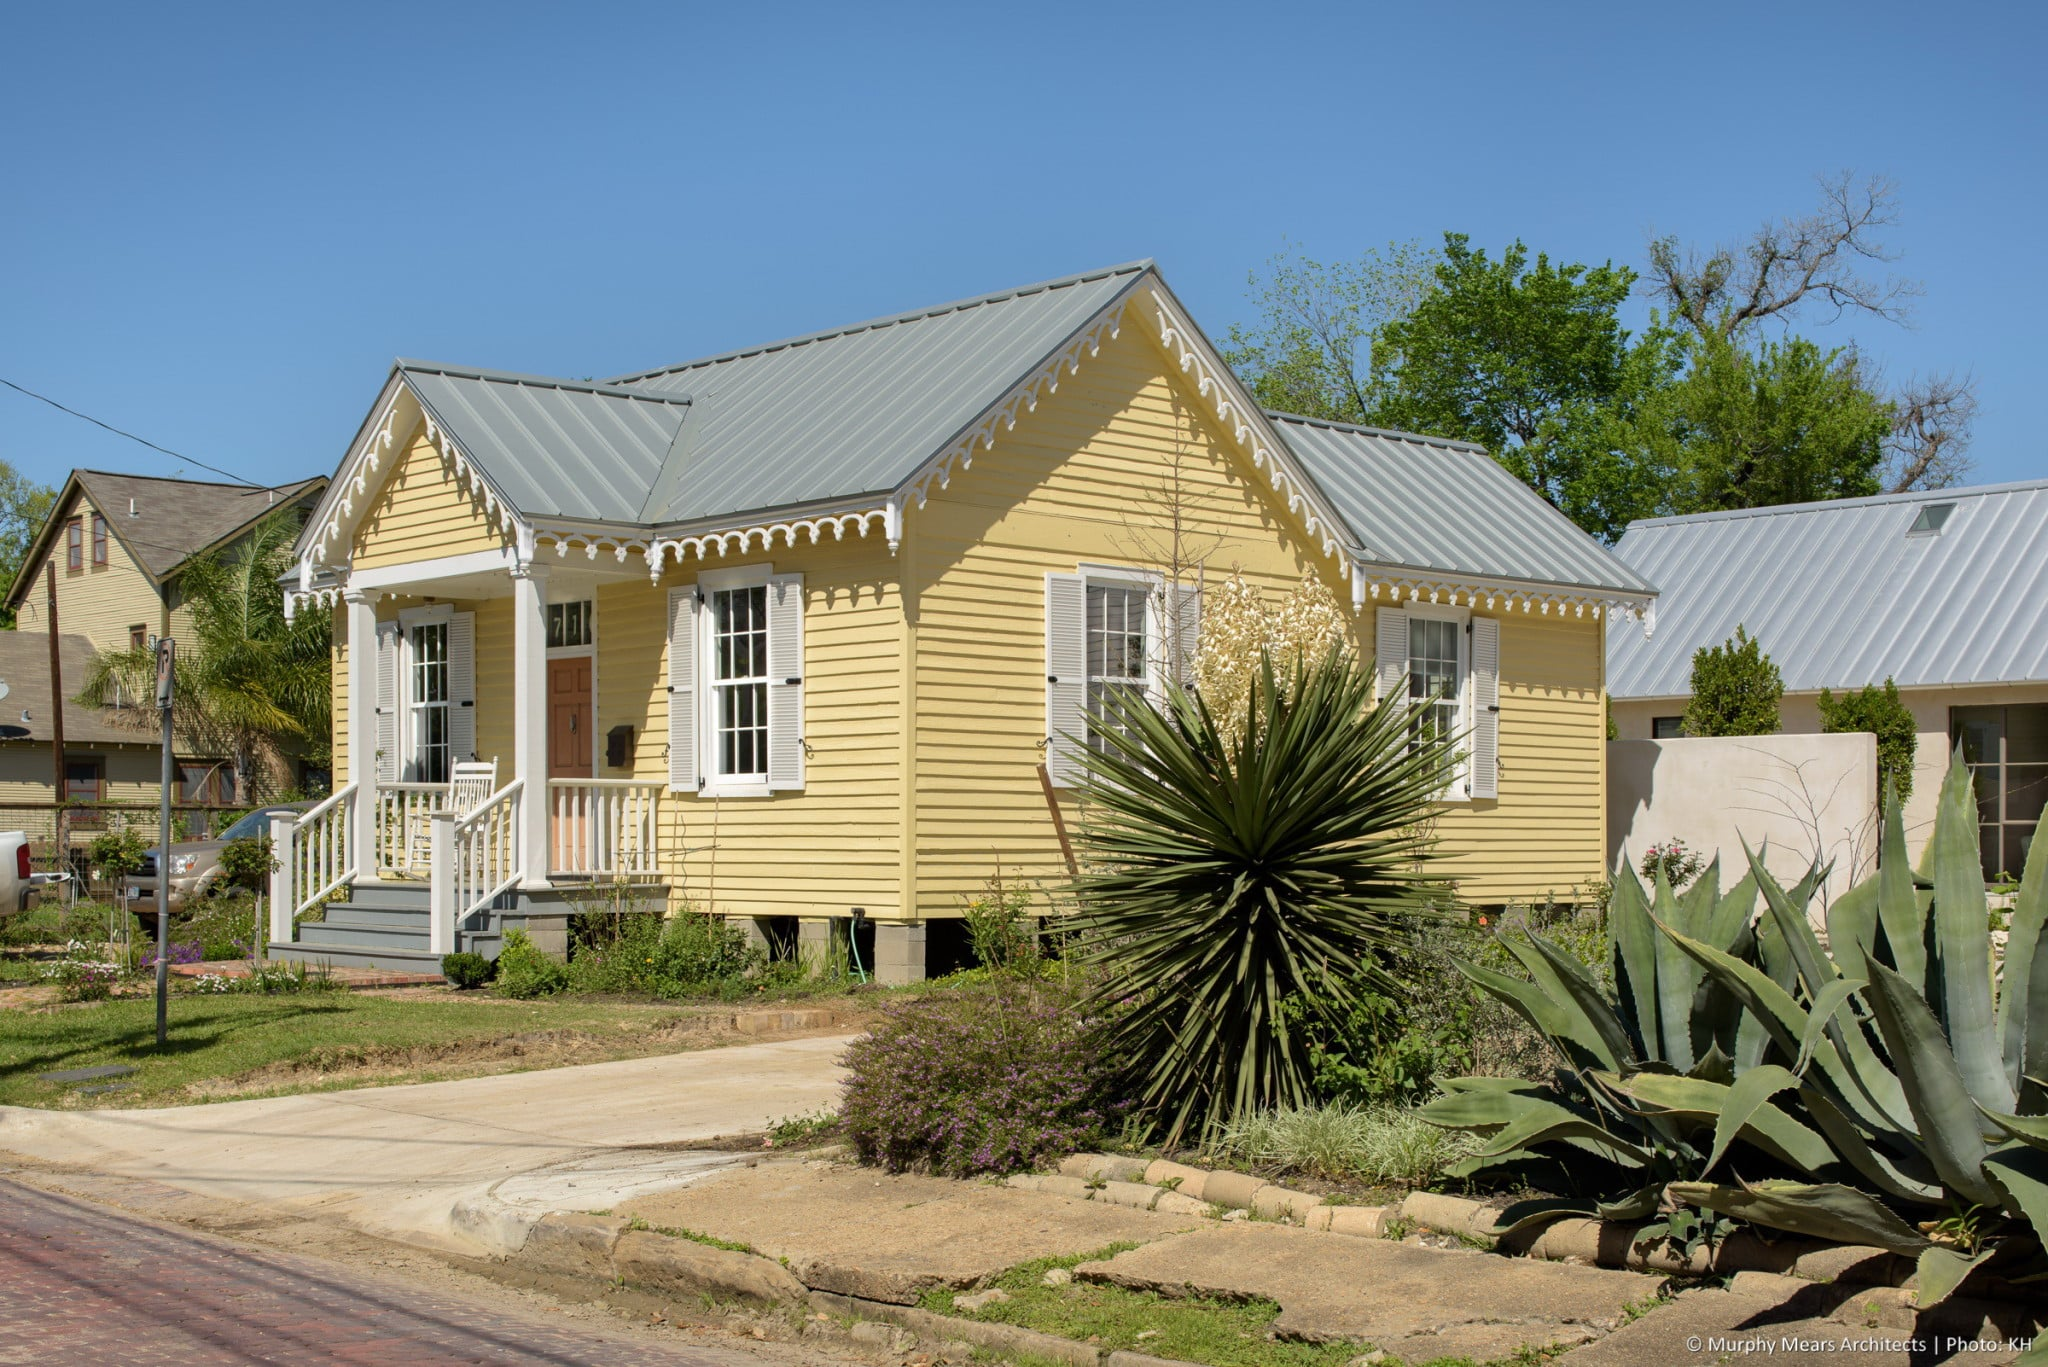 Restored exterior of the 1870's Gottlieb Eisele house, with a similar roof line on the new cottage visible beyond.